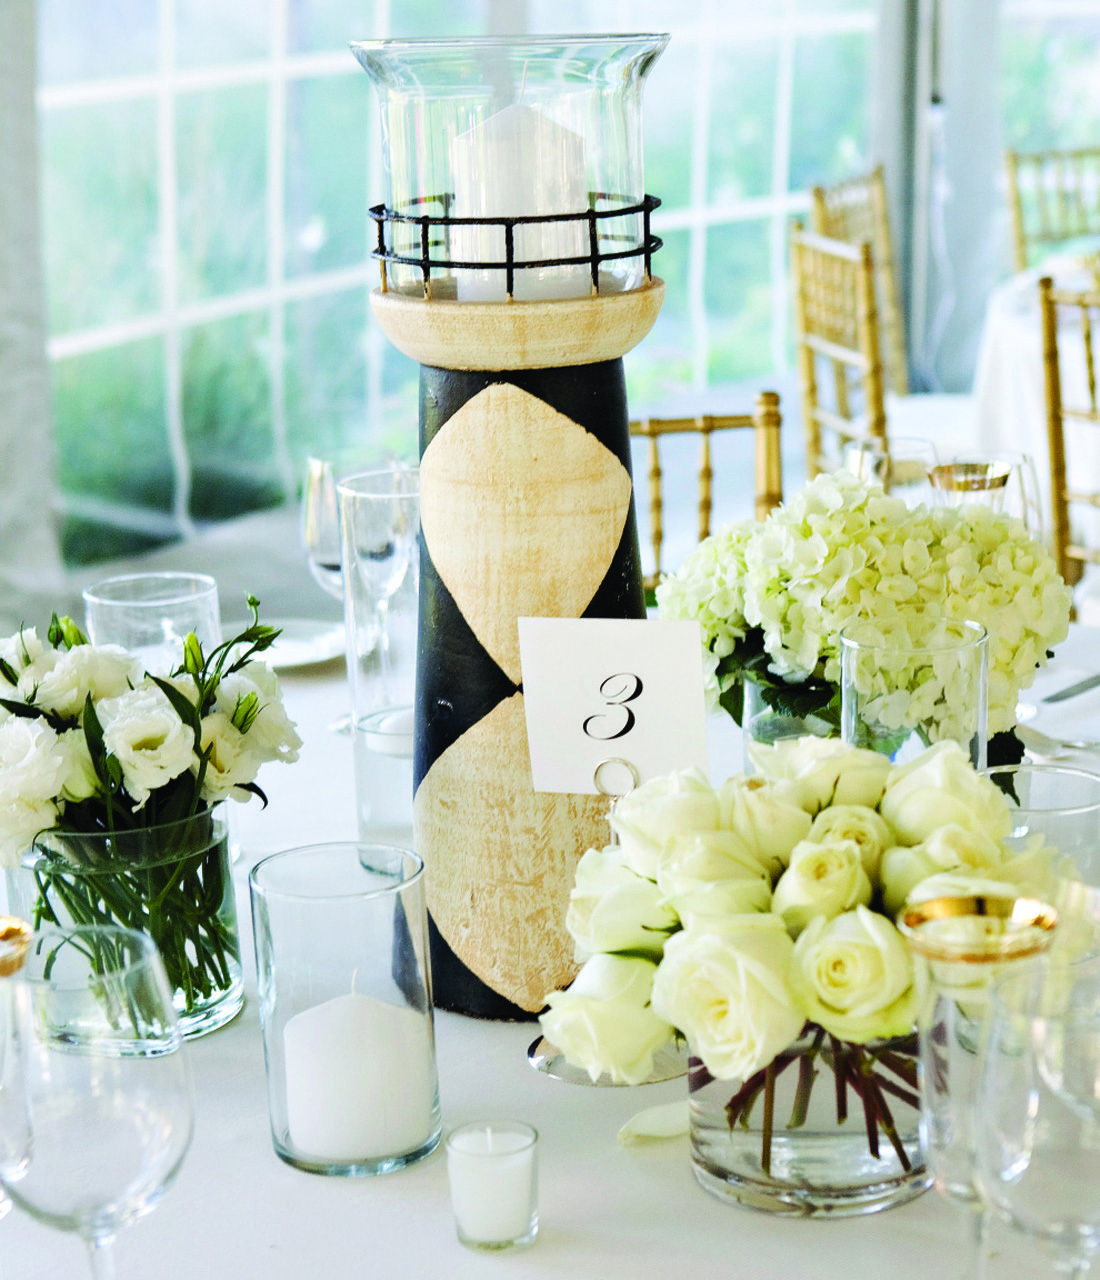 Beach Wedding Centerpieces Ideas: Pretty Centerpieces For A Seaside Wedding